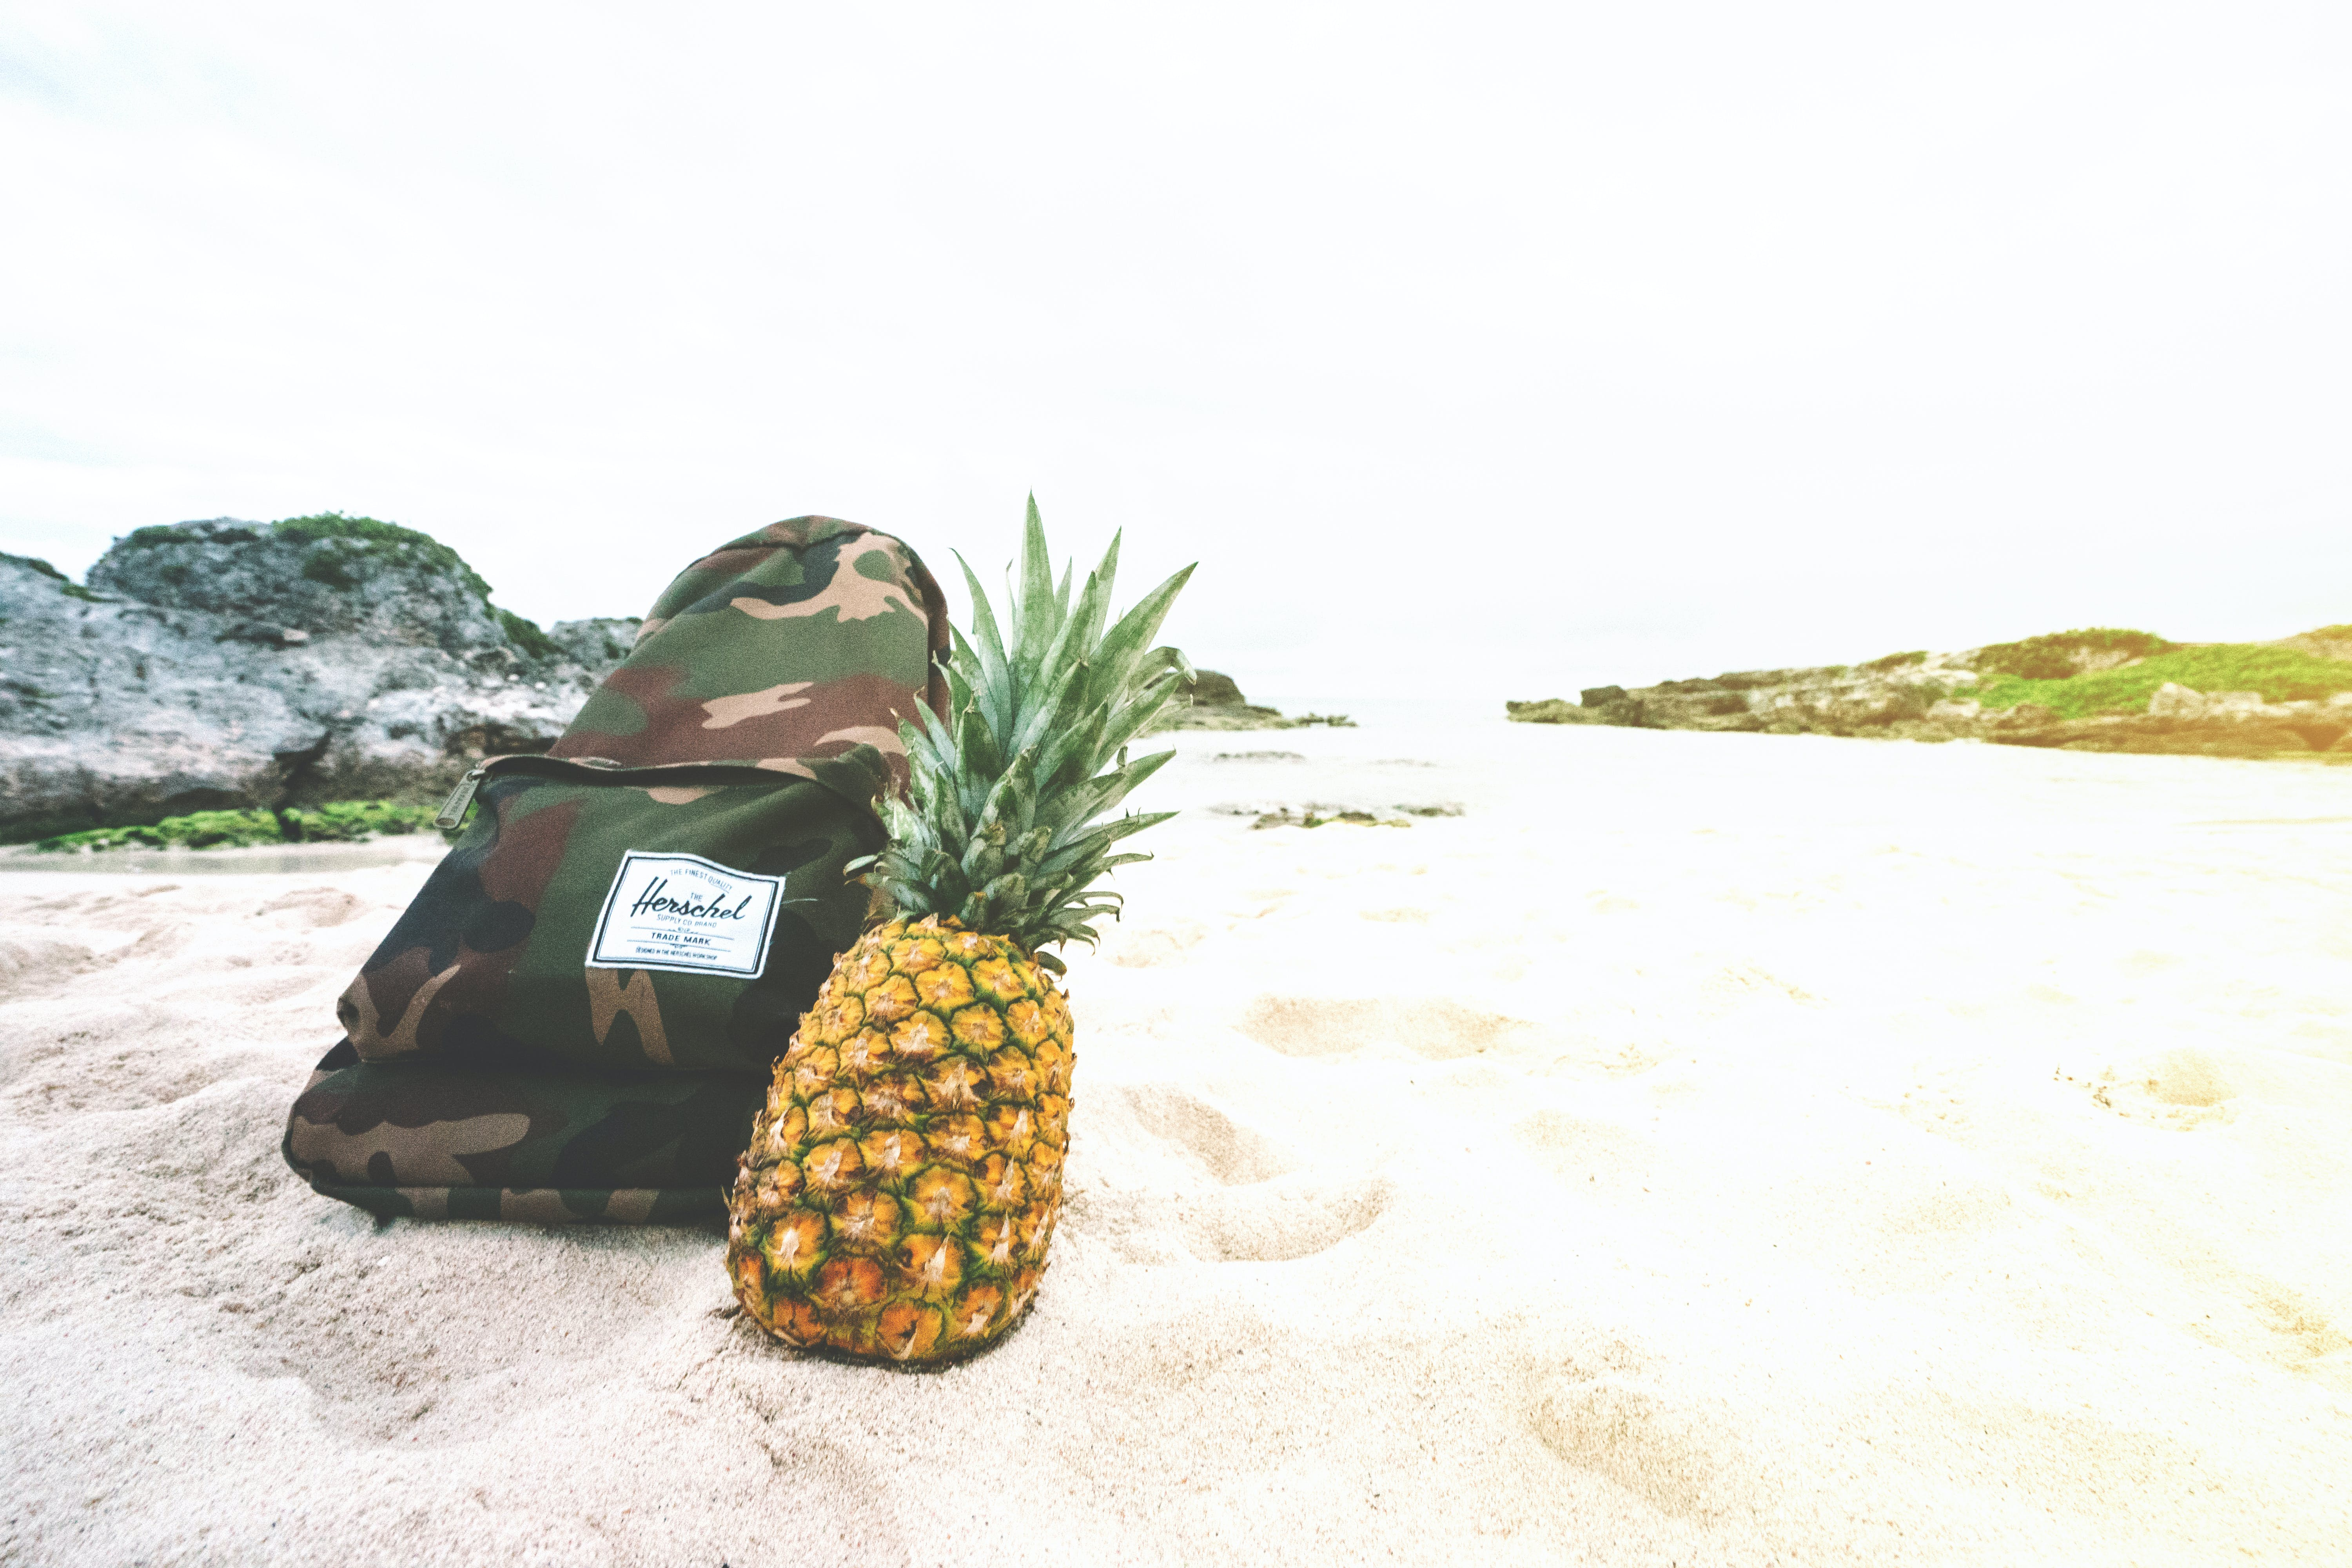 Pineapple Fruit Beside Backpack on White Sand